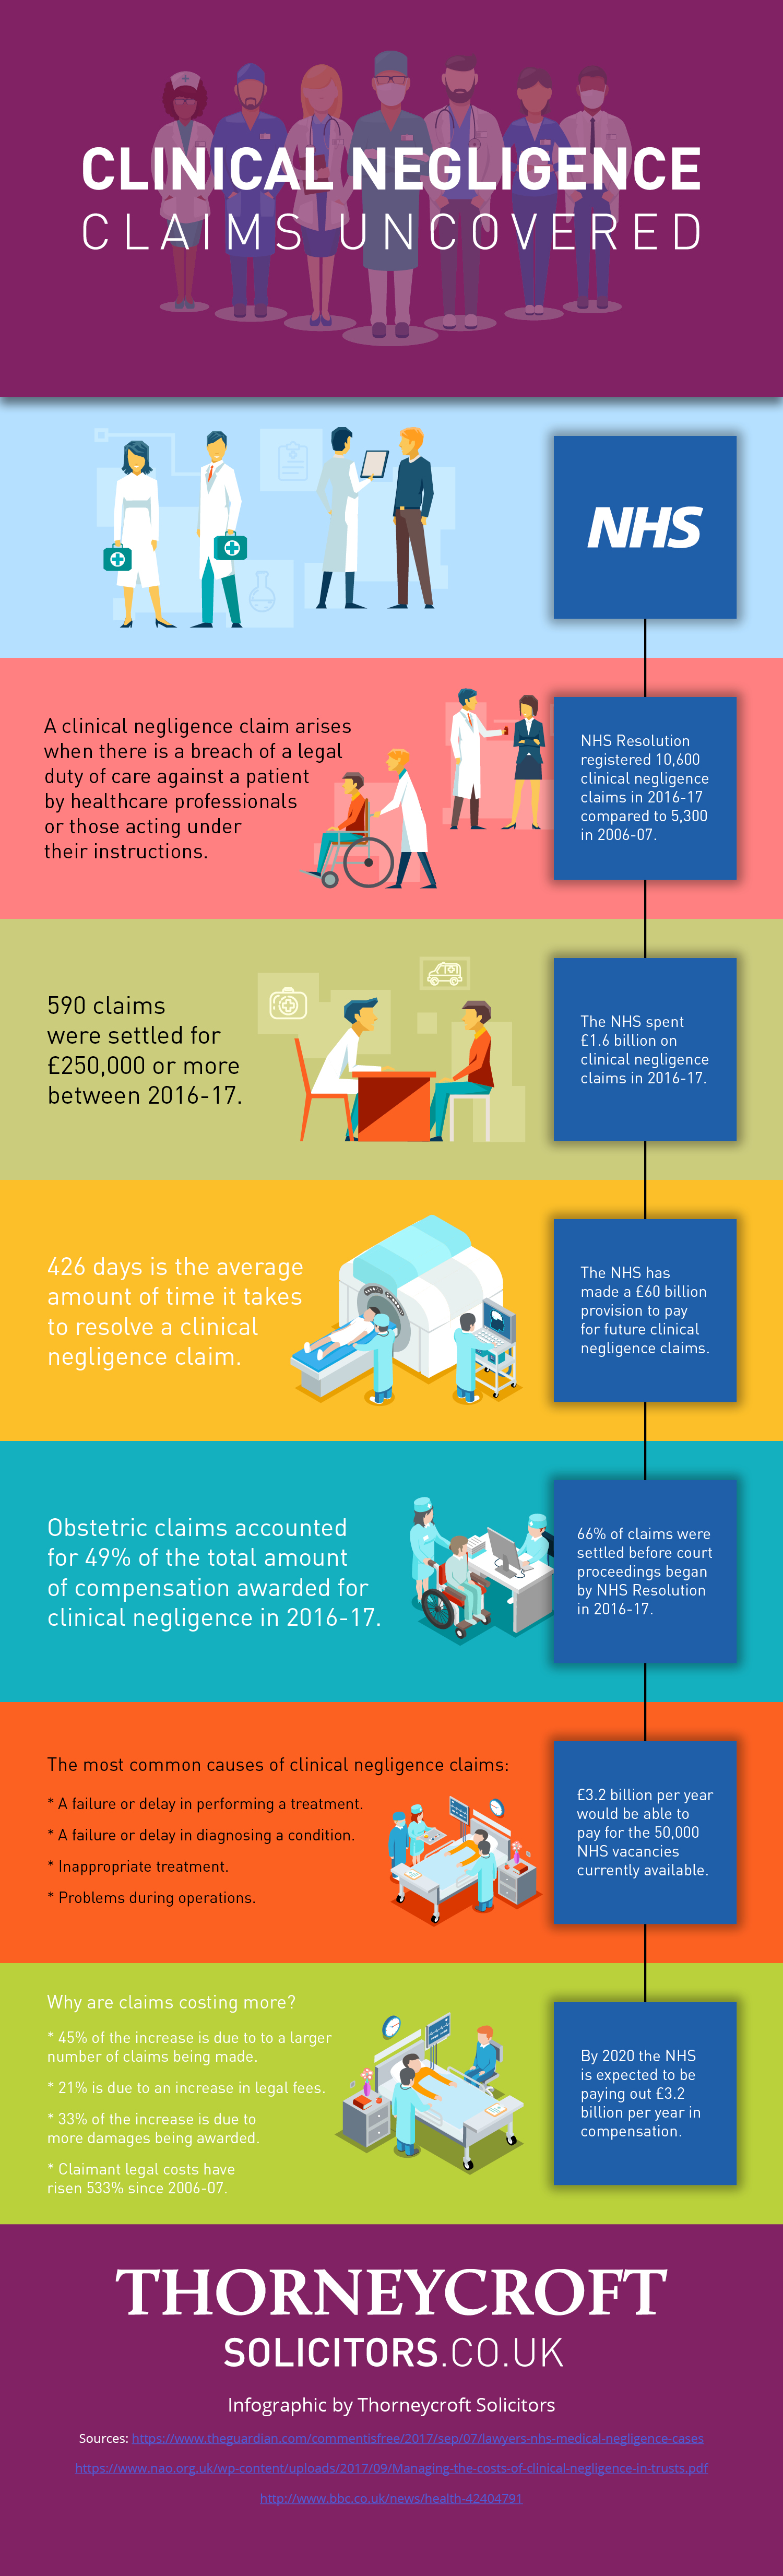 Thorneycroft Solicitors clinical Negligence infographic